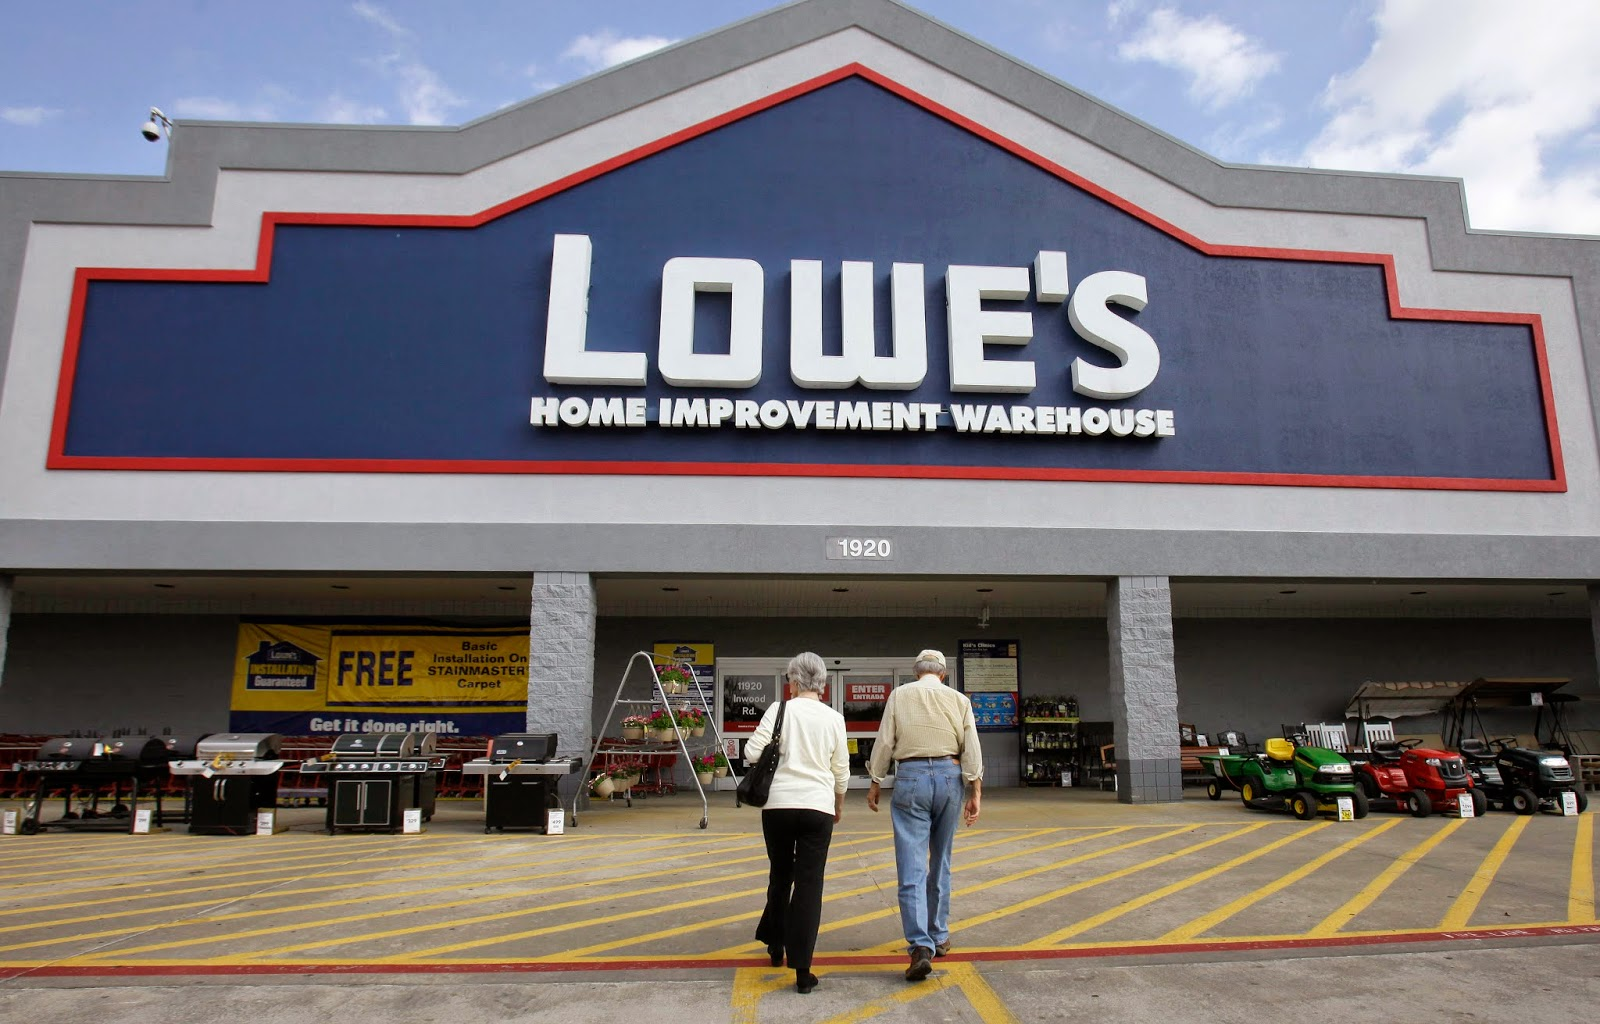 Home Depot and Lowe's have long been known to offer a 10% military discount to military members, veterans, and retirees on the main military holidays such as Memorial Day, Fourth of July, and Veterans Day. Well, good news – both companies now offer these military discounts every day of the week.